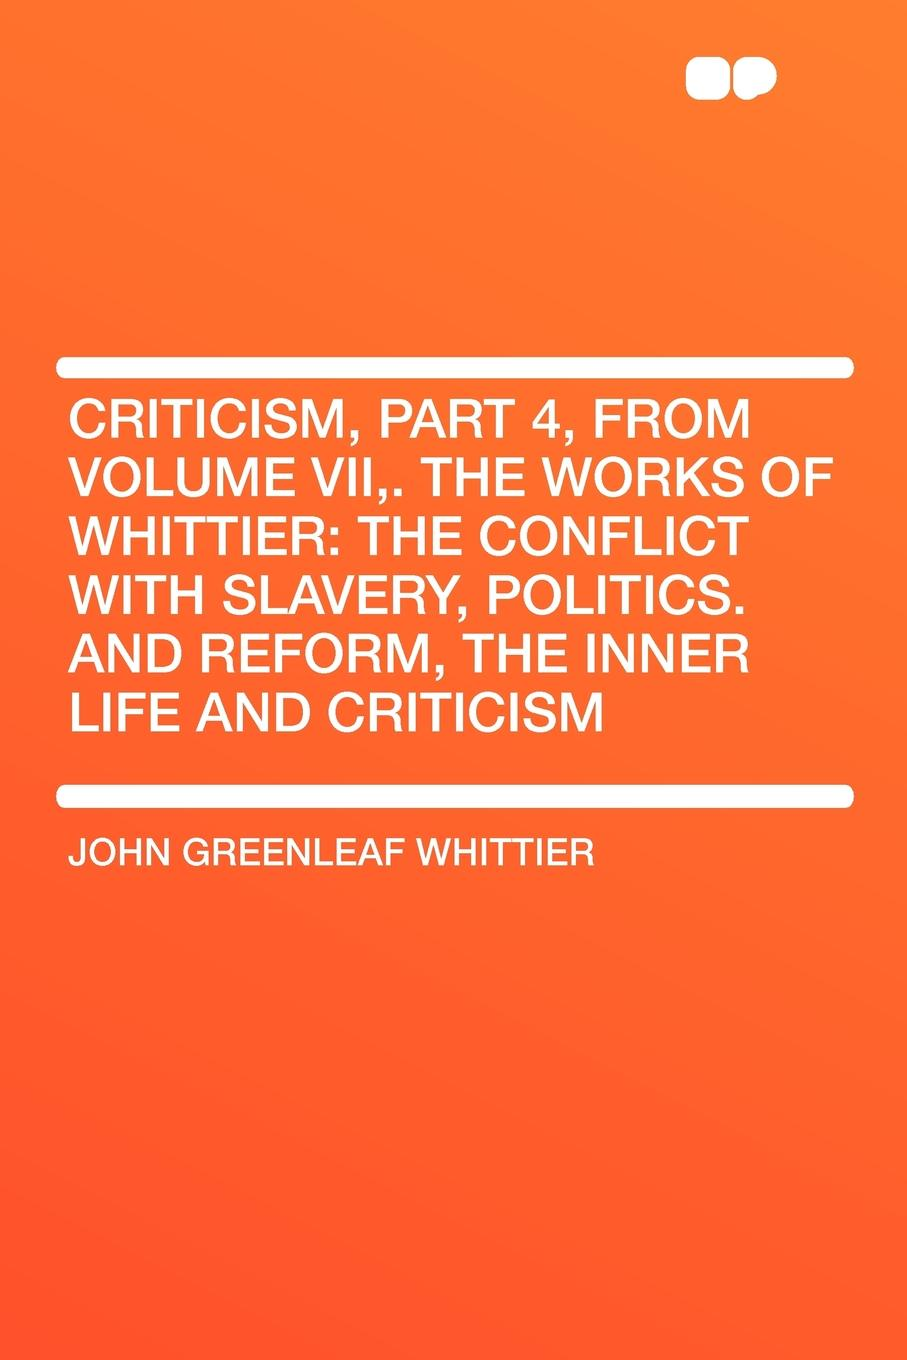 John Greenleaf Whittier Criticism, Part 4, from Volume VII,. The Works of Whittier. the Conflict with Slavery, Politics. and Reform, the Inner Life and Criticism john brademas the politics of education conflict and consensus on capitol hill